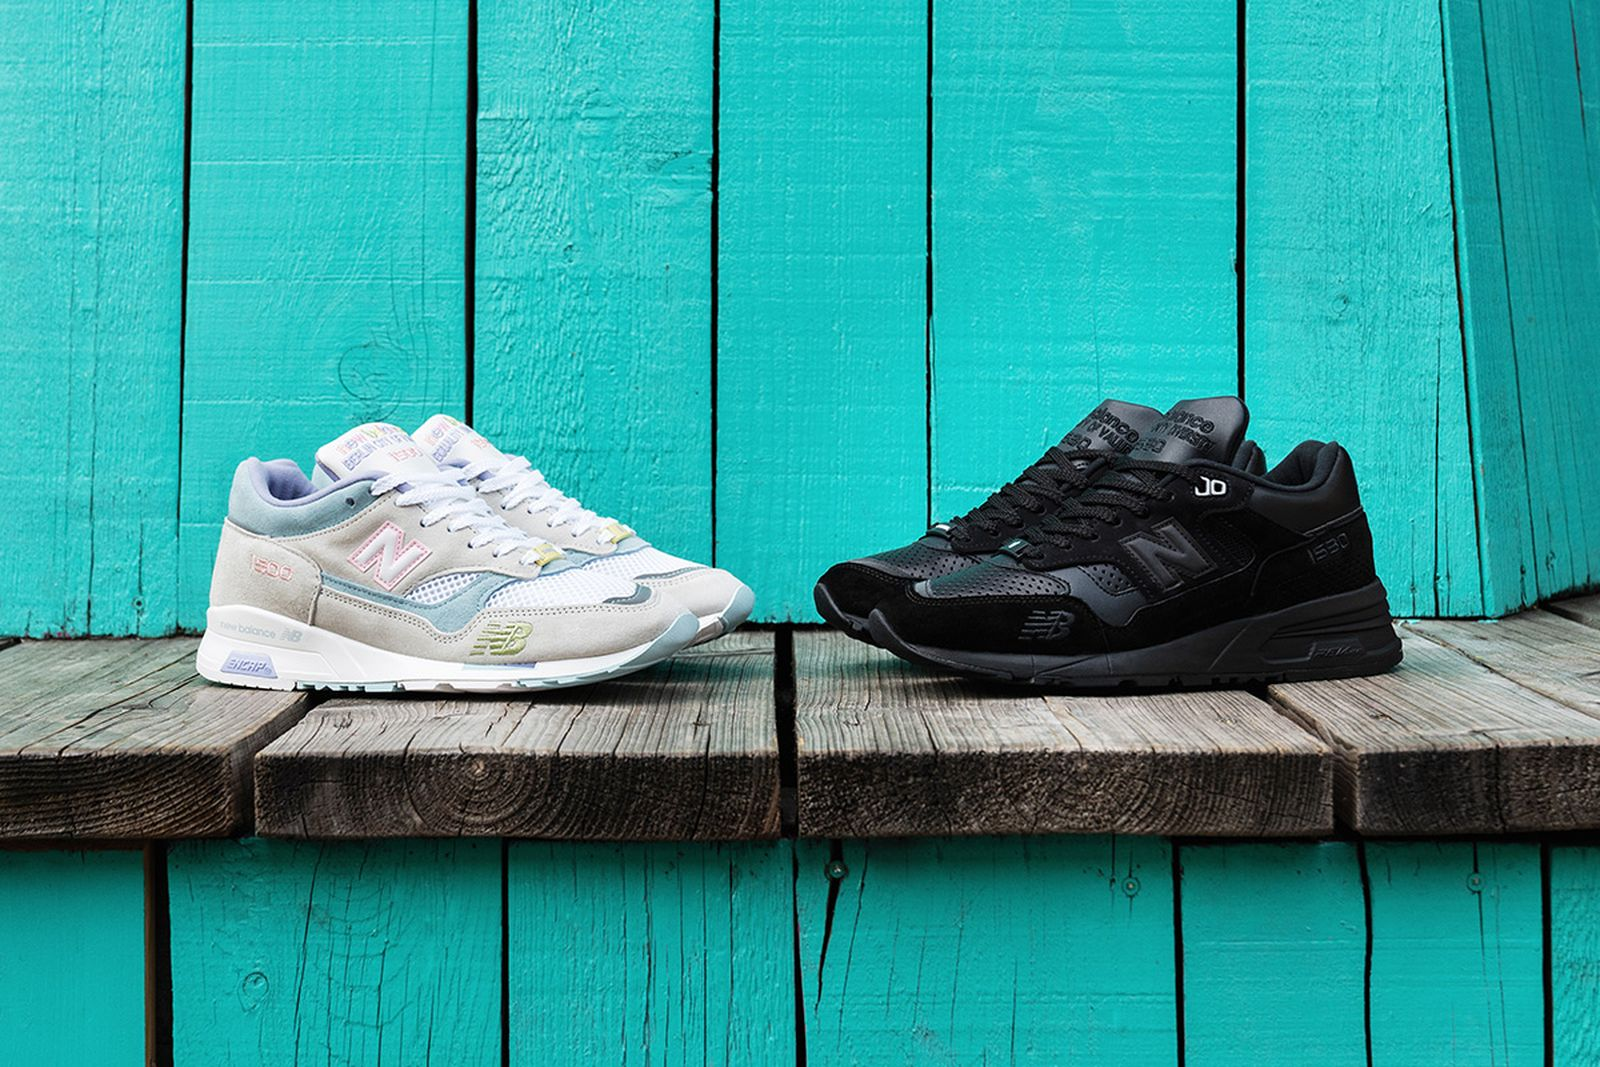 Overkill x New Balance M1500 Berlin City of Values Pack: Buy Here